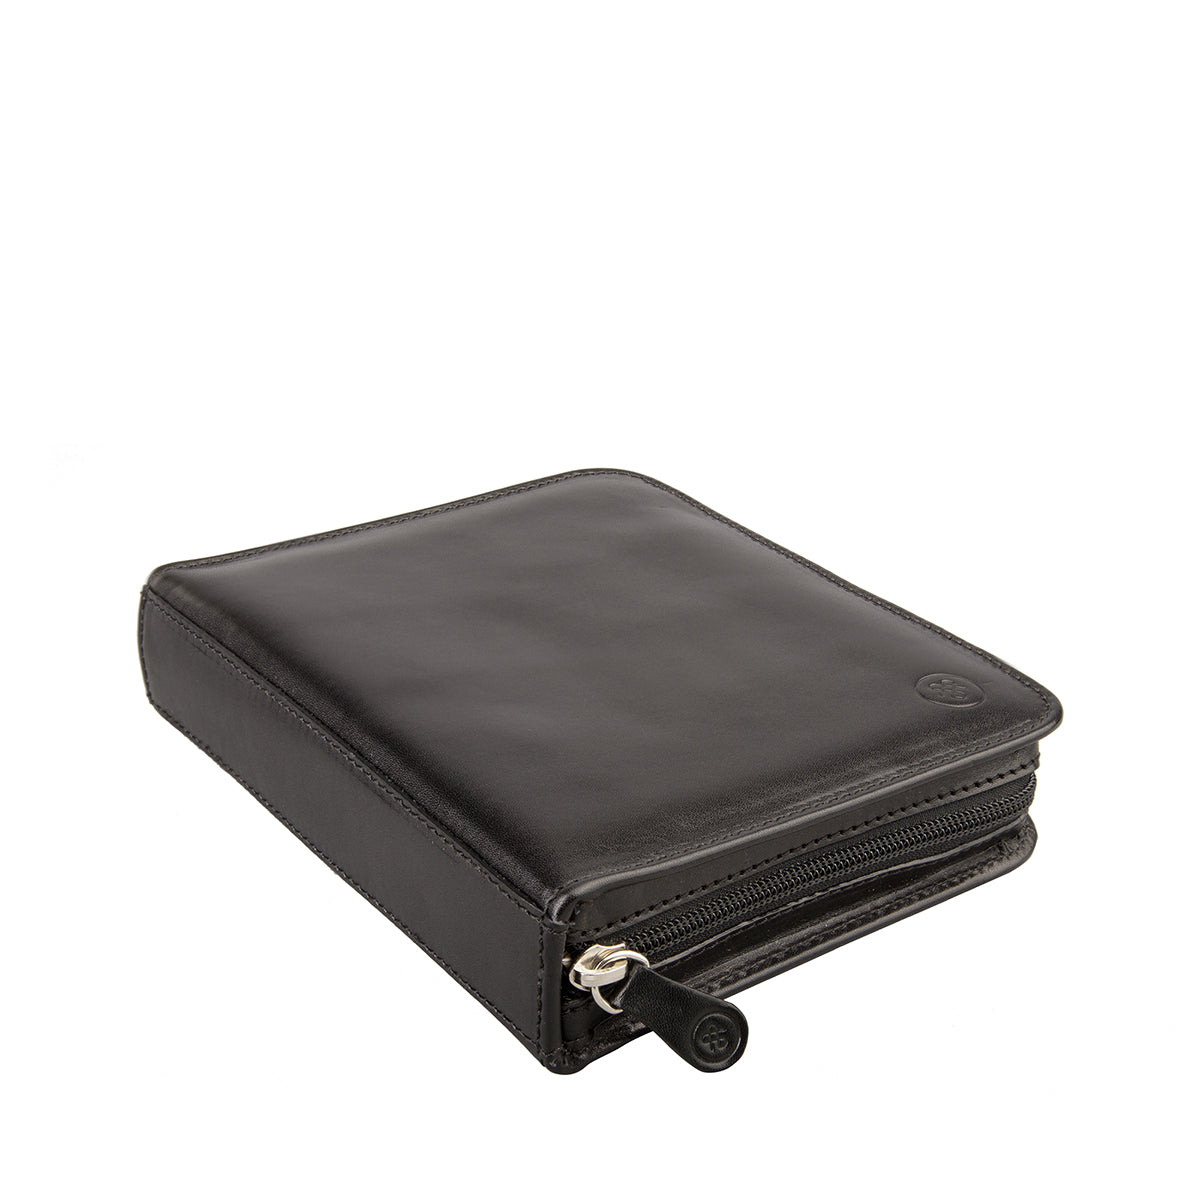 Image 4 of the 'Atella' Black Veg-Tanned Leather Watch Presentation Case